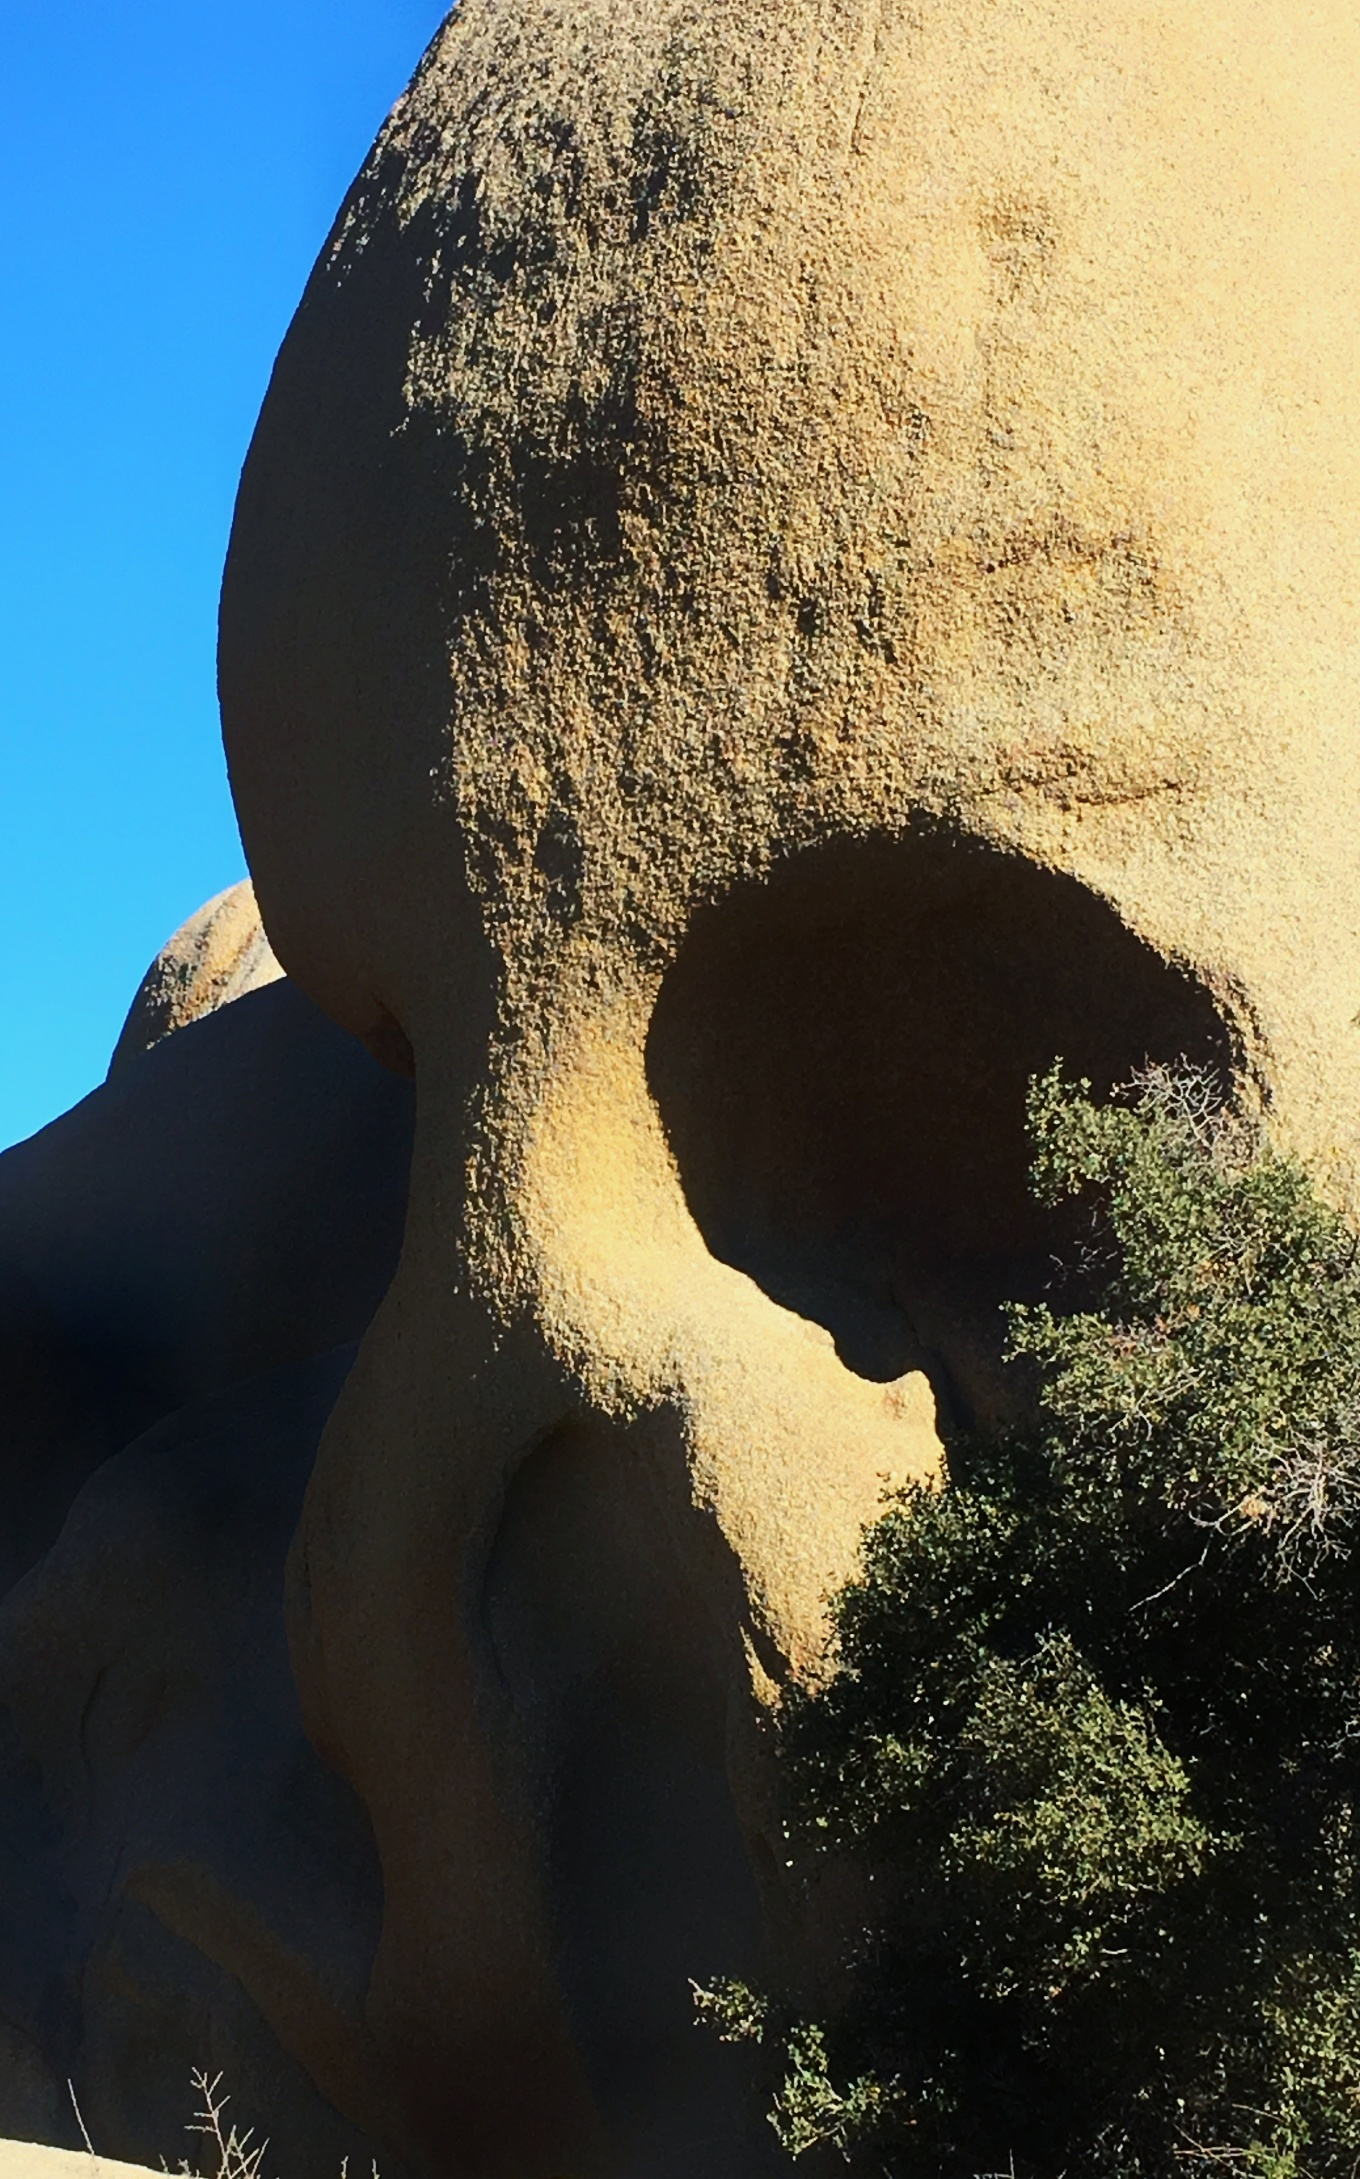 Skull Rock, Joshua Tree National Park